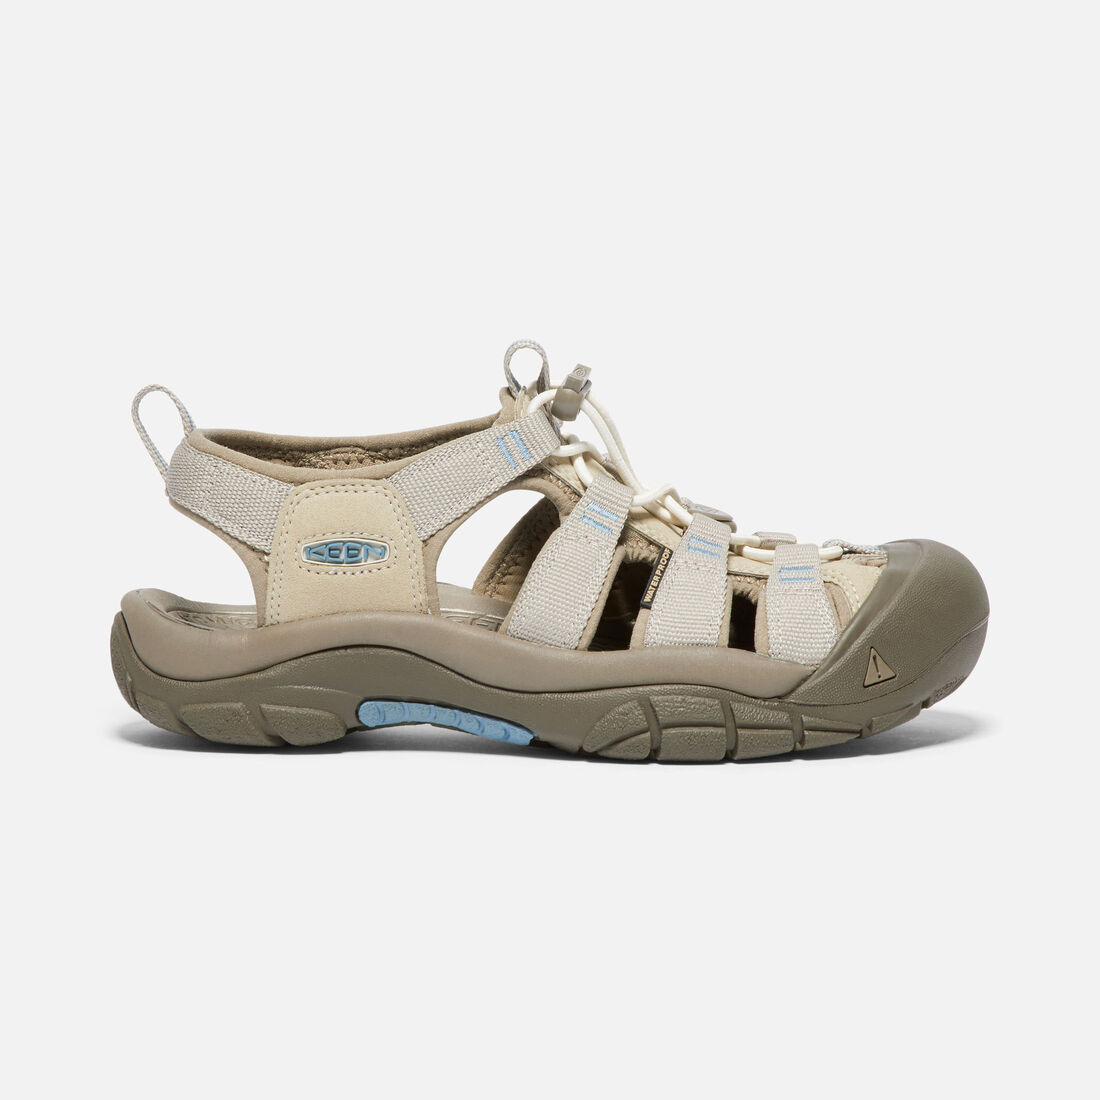 Women's Newport H2 in PLAZA TAUPE/PROVINCIAL BLUE - large view.